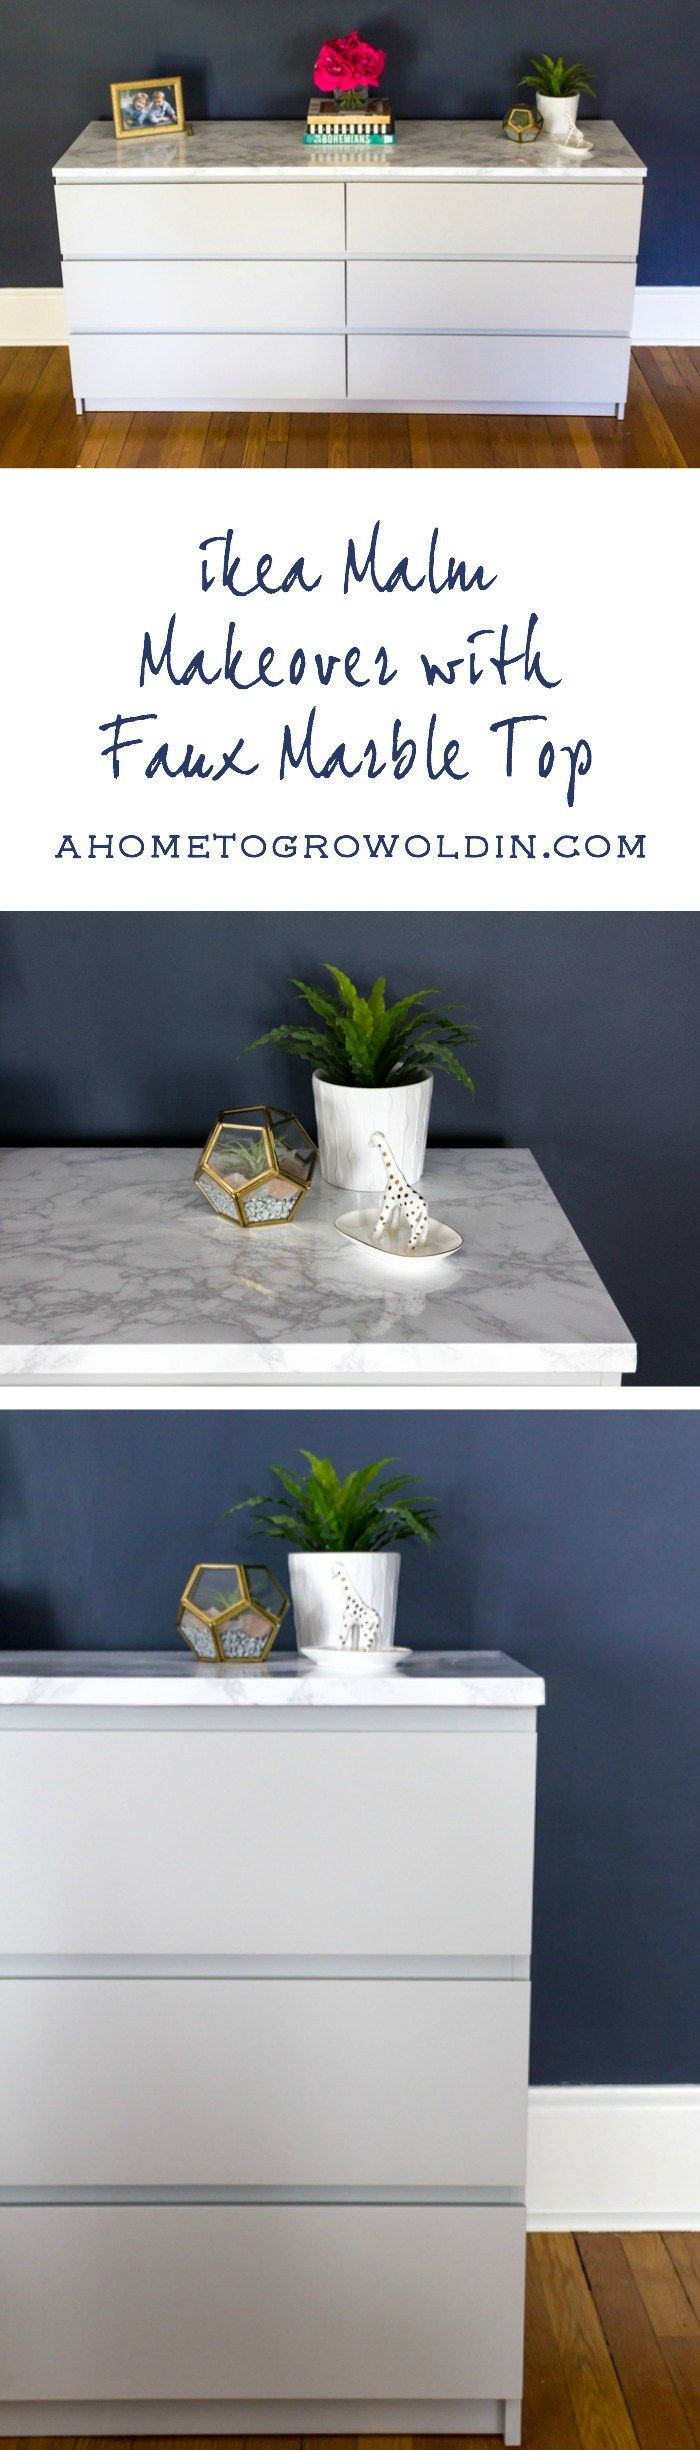 An easy Ikea hack to update your Malm dresser! Great tips on painting laminate furniture as well as how to apply a faux marble top. Check out the before and after pictures of this DIY project! FOR THE VANITY TOP?